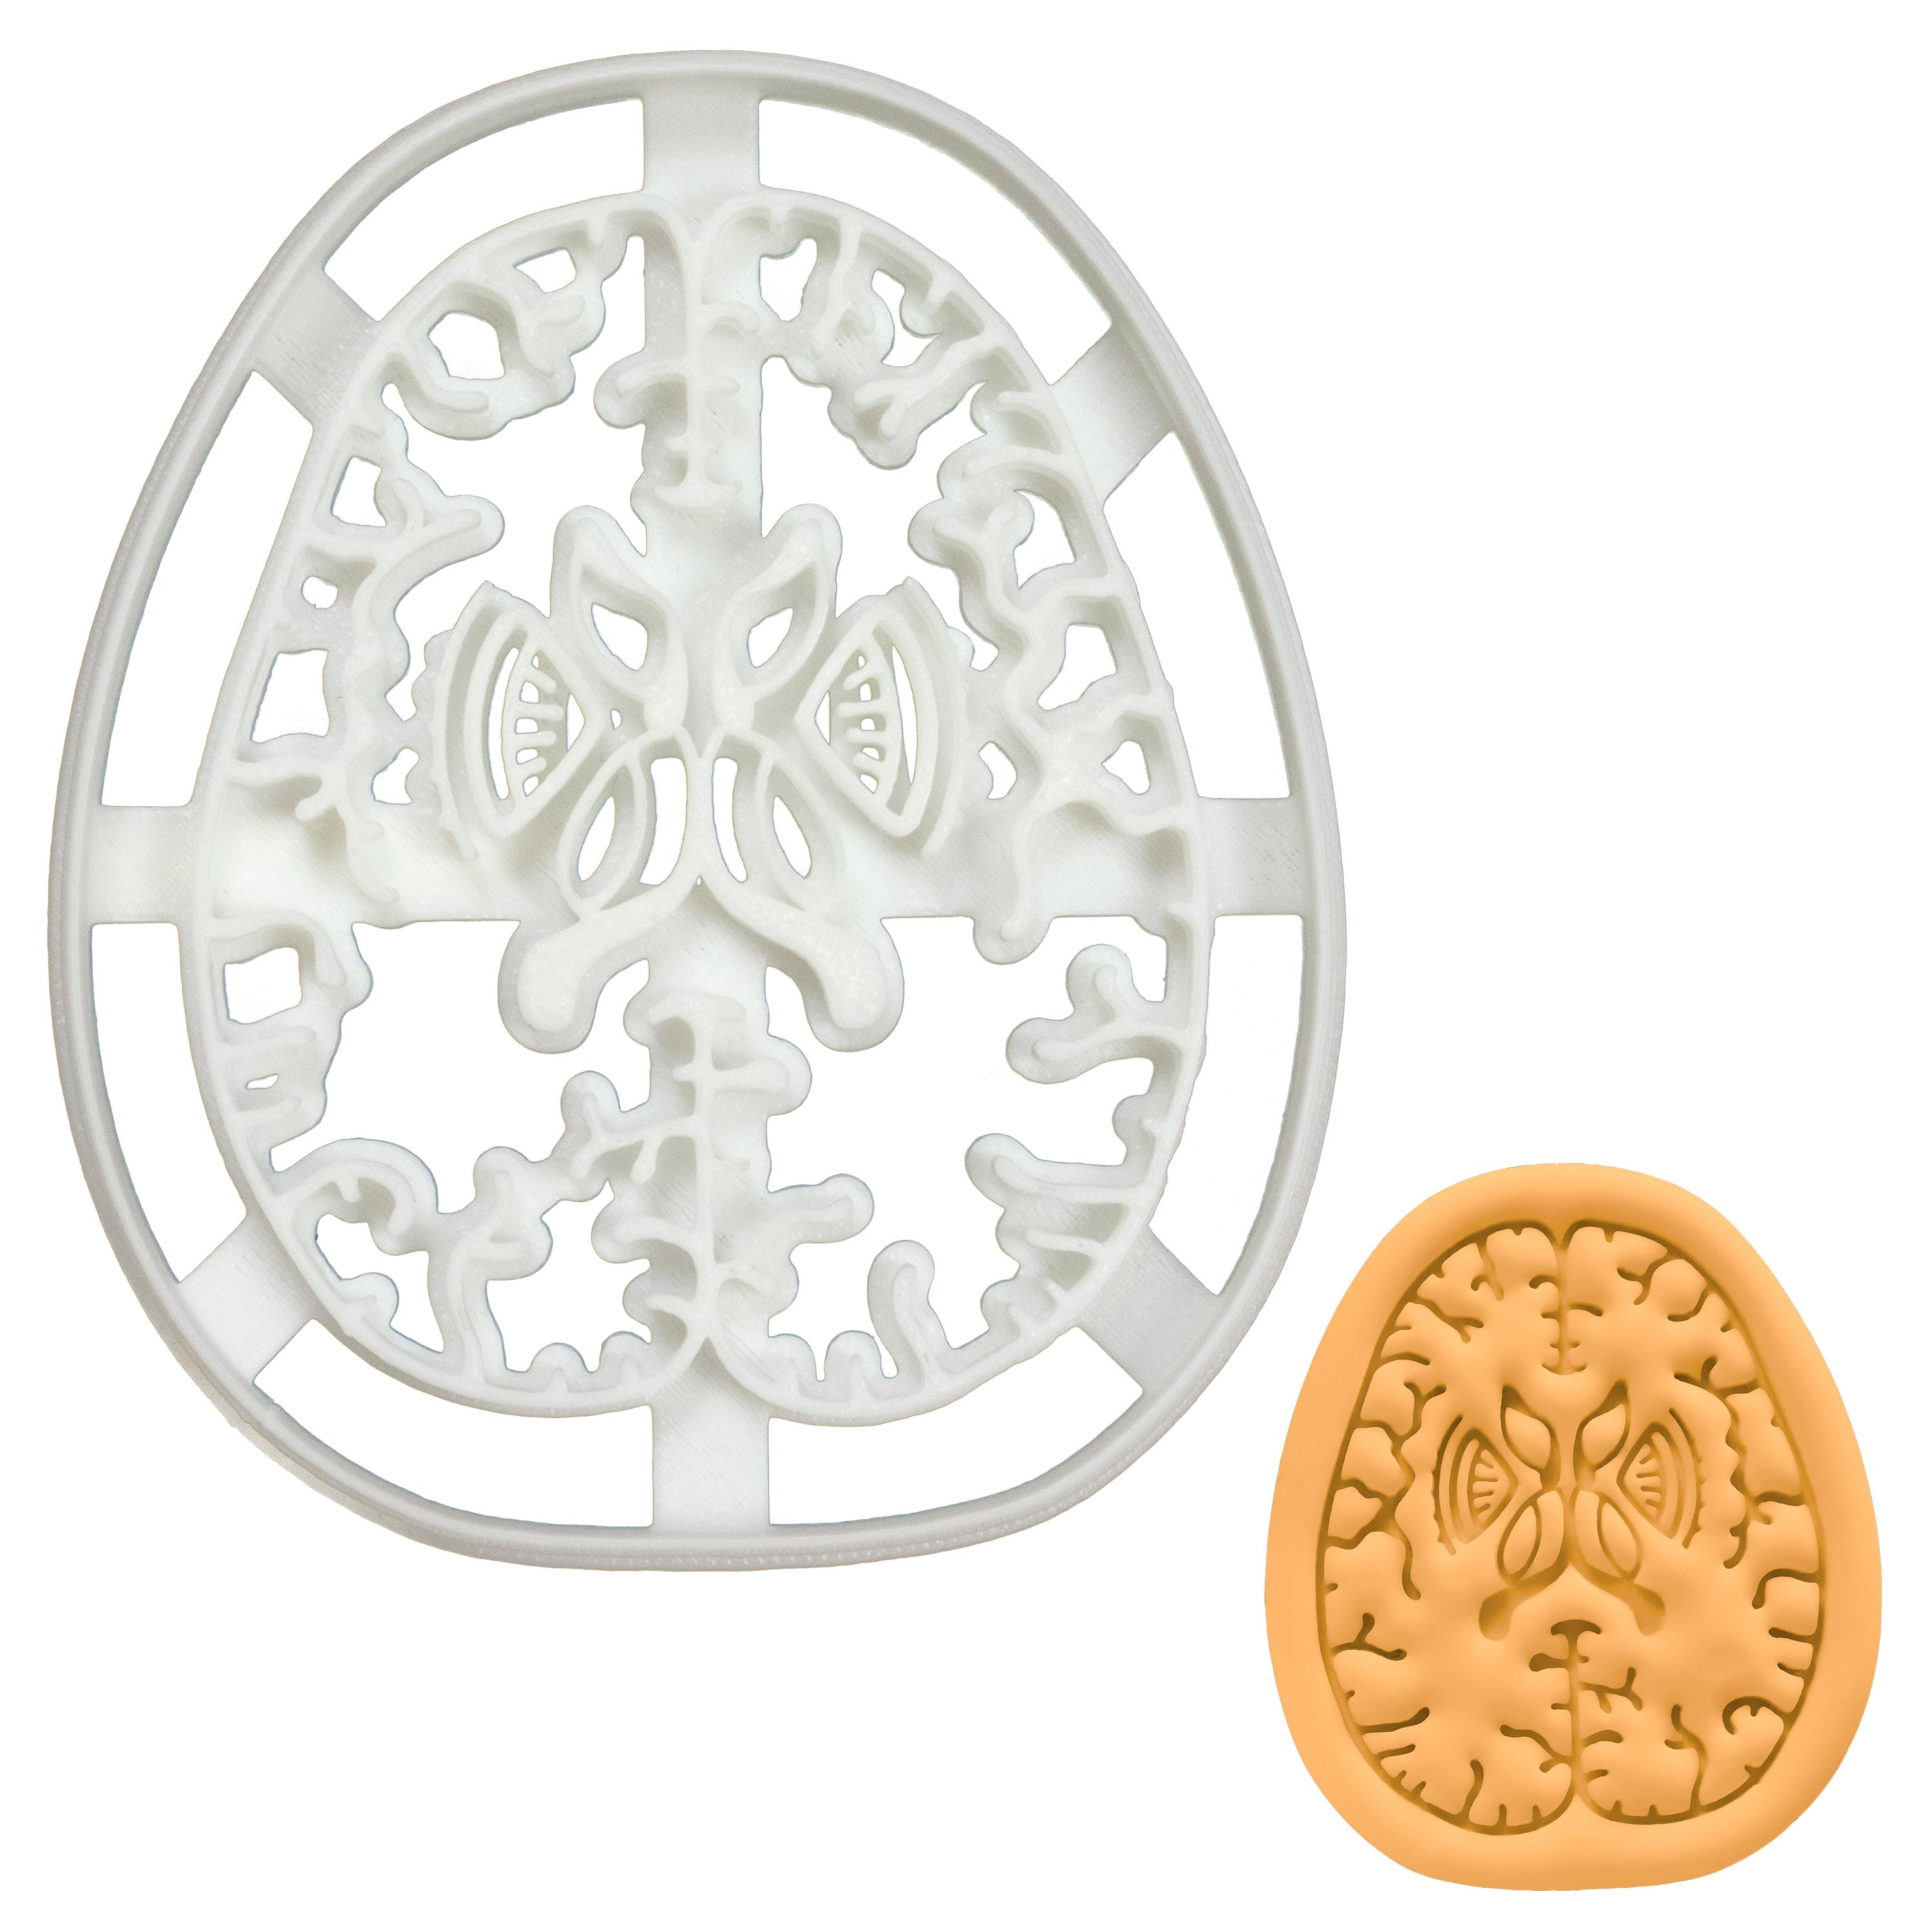 Brain Axial Section Cookie Cutter